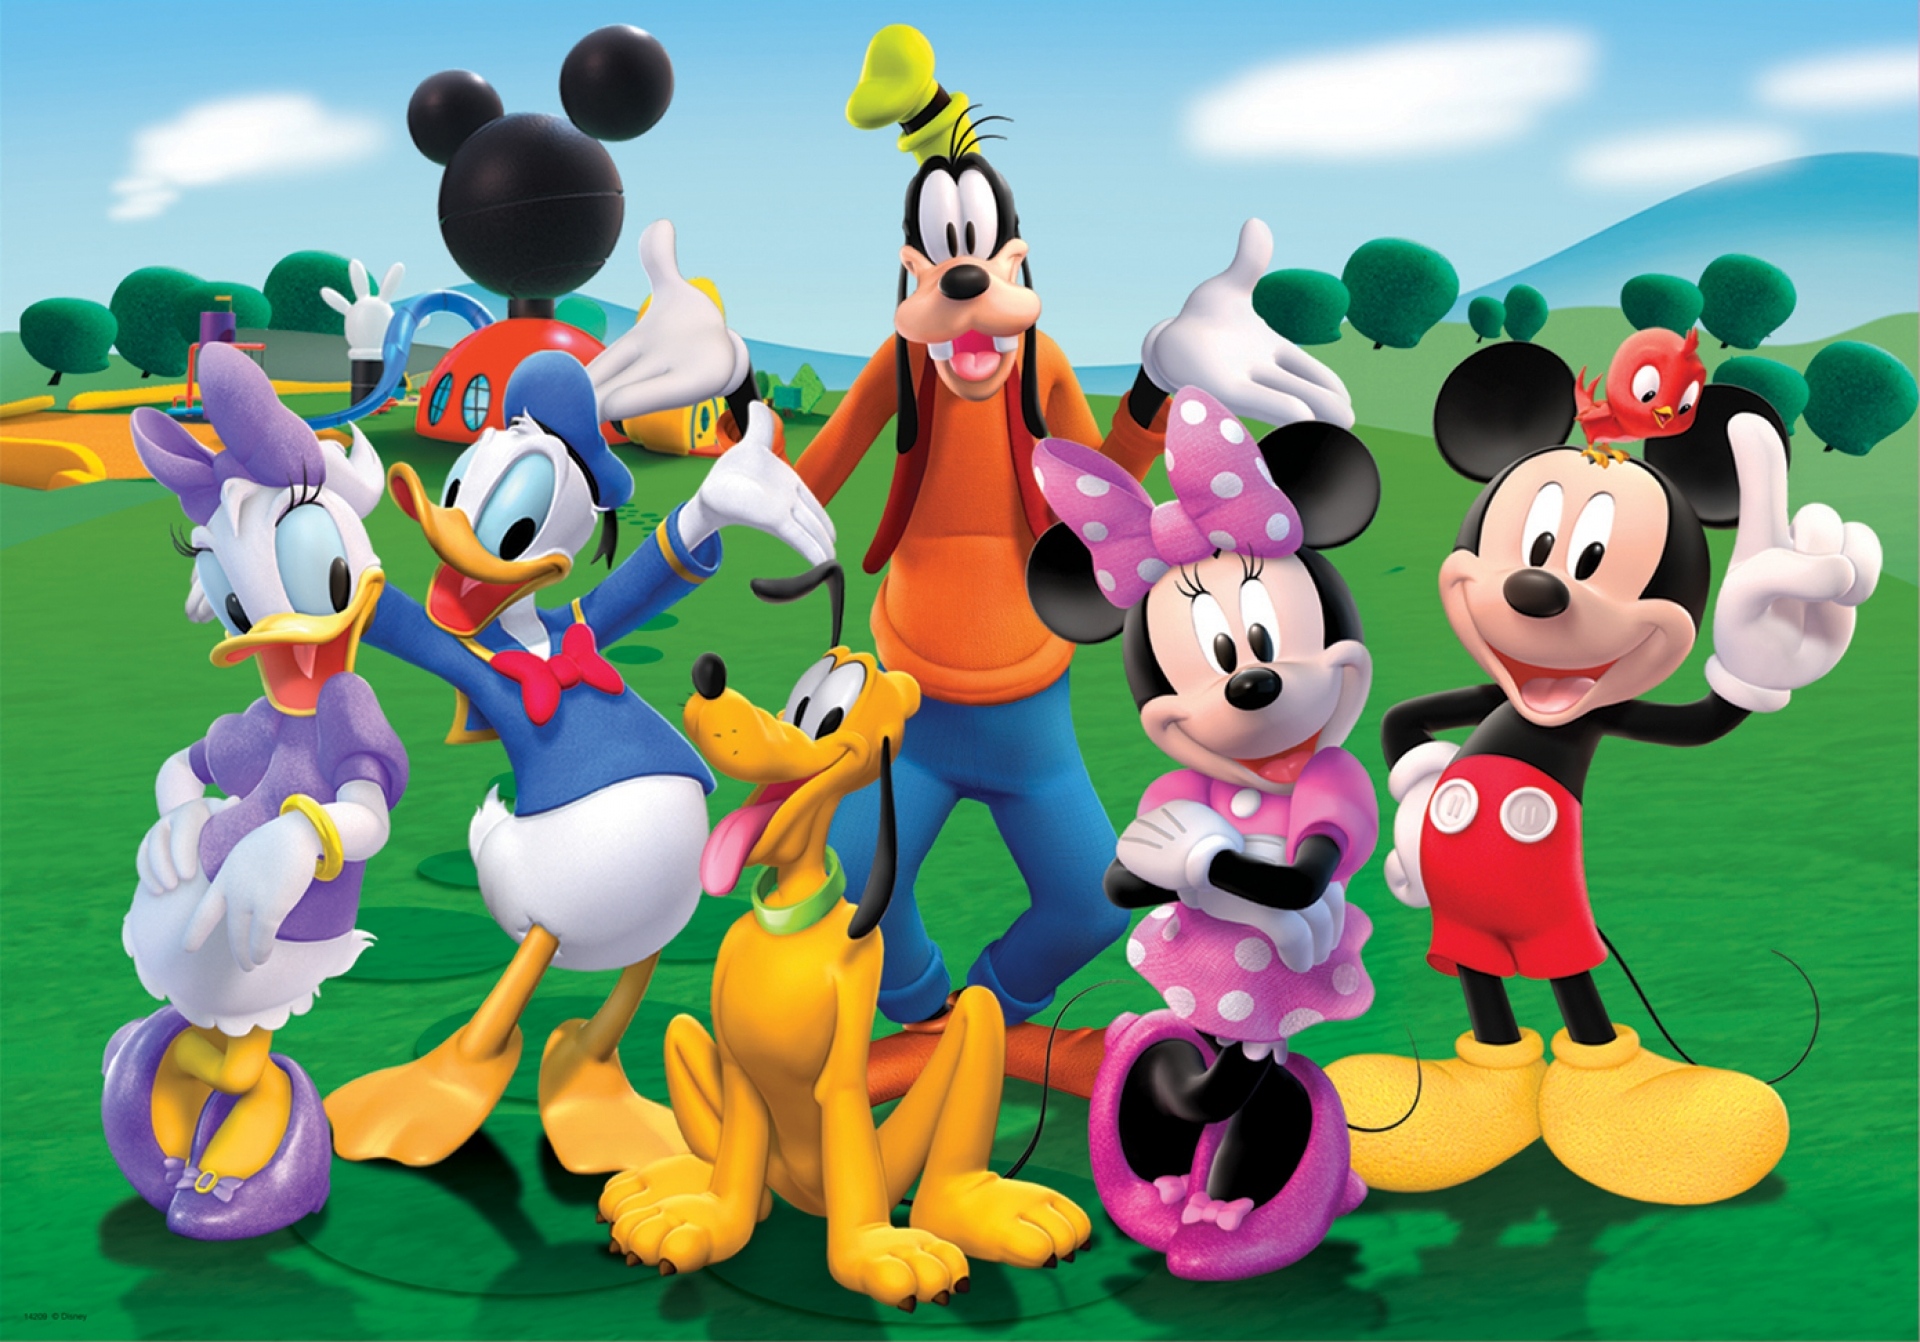 Cute Computer Wallpaper Quotes Mickey Mouse Wallpaper 1920x1080 9675 Wallpaper